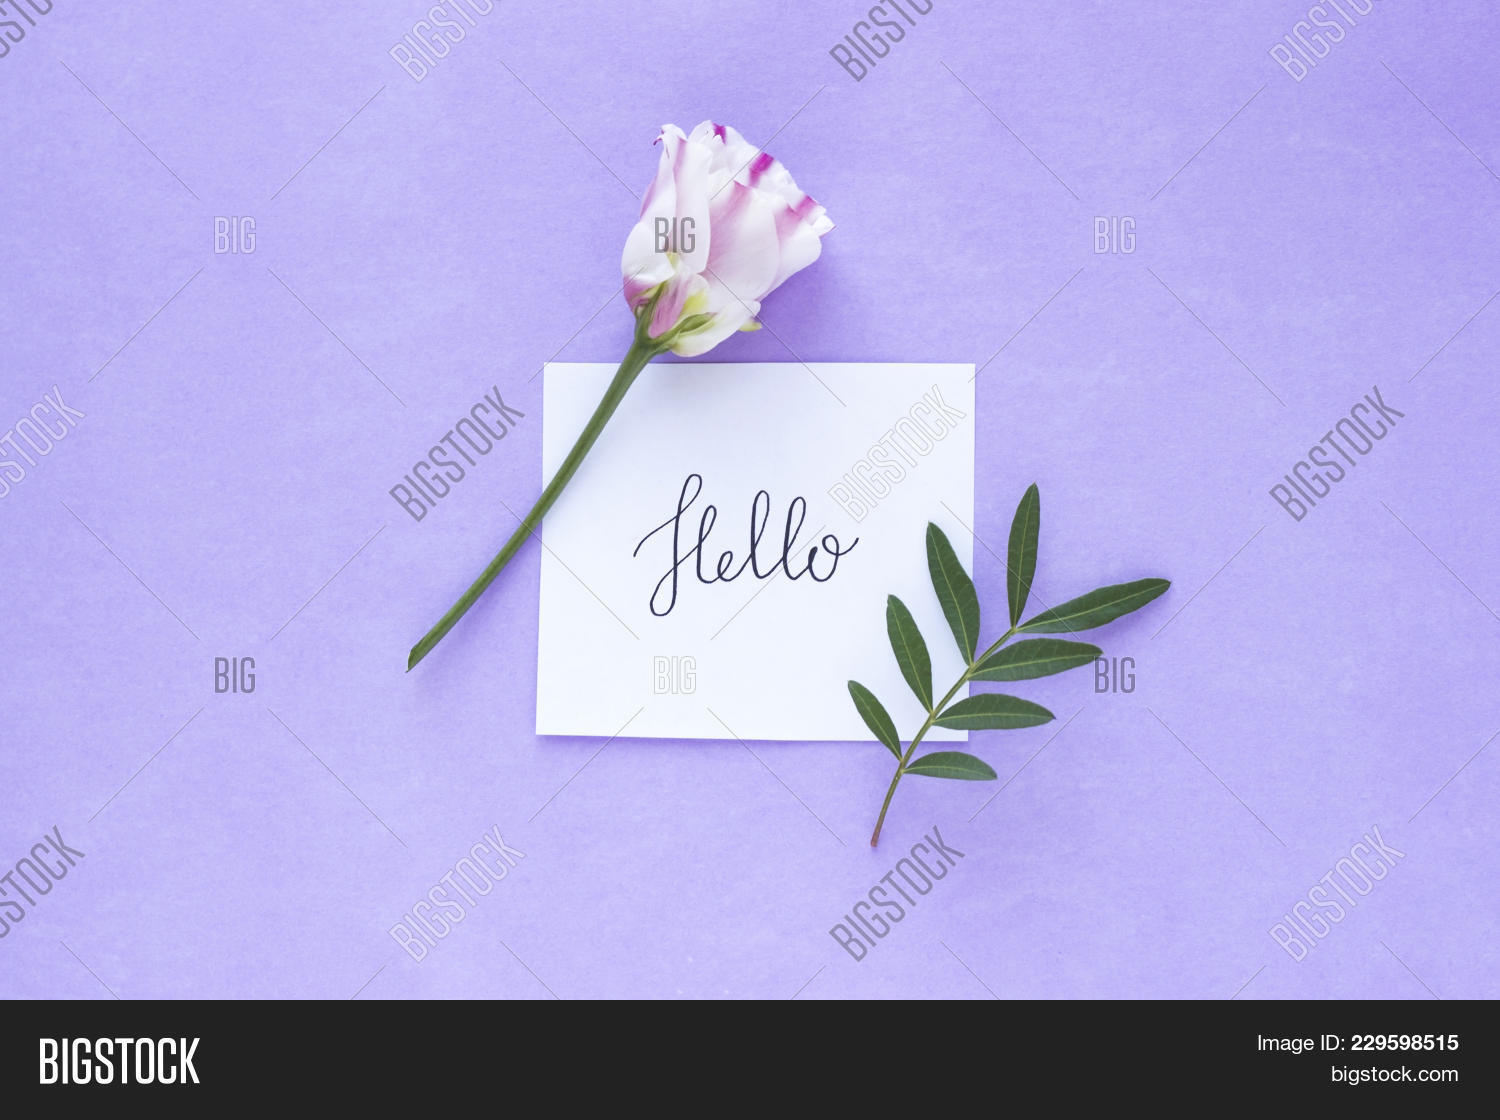 Pink White Flower Powerpoint Background PowerPoint Template Pink - Best of flower powerpoint background concept